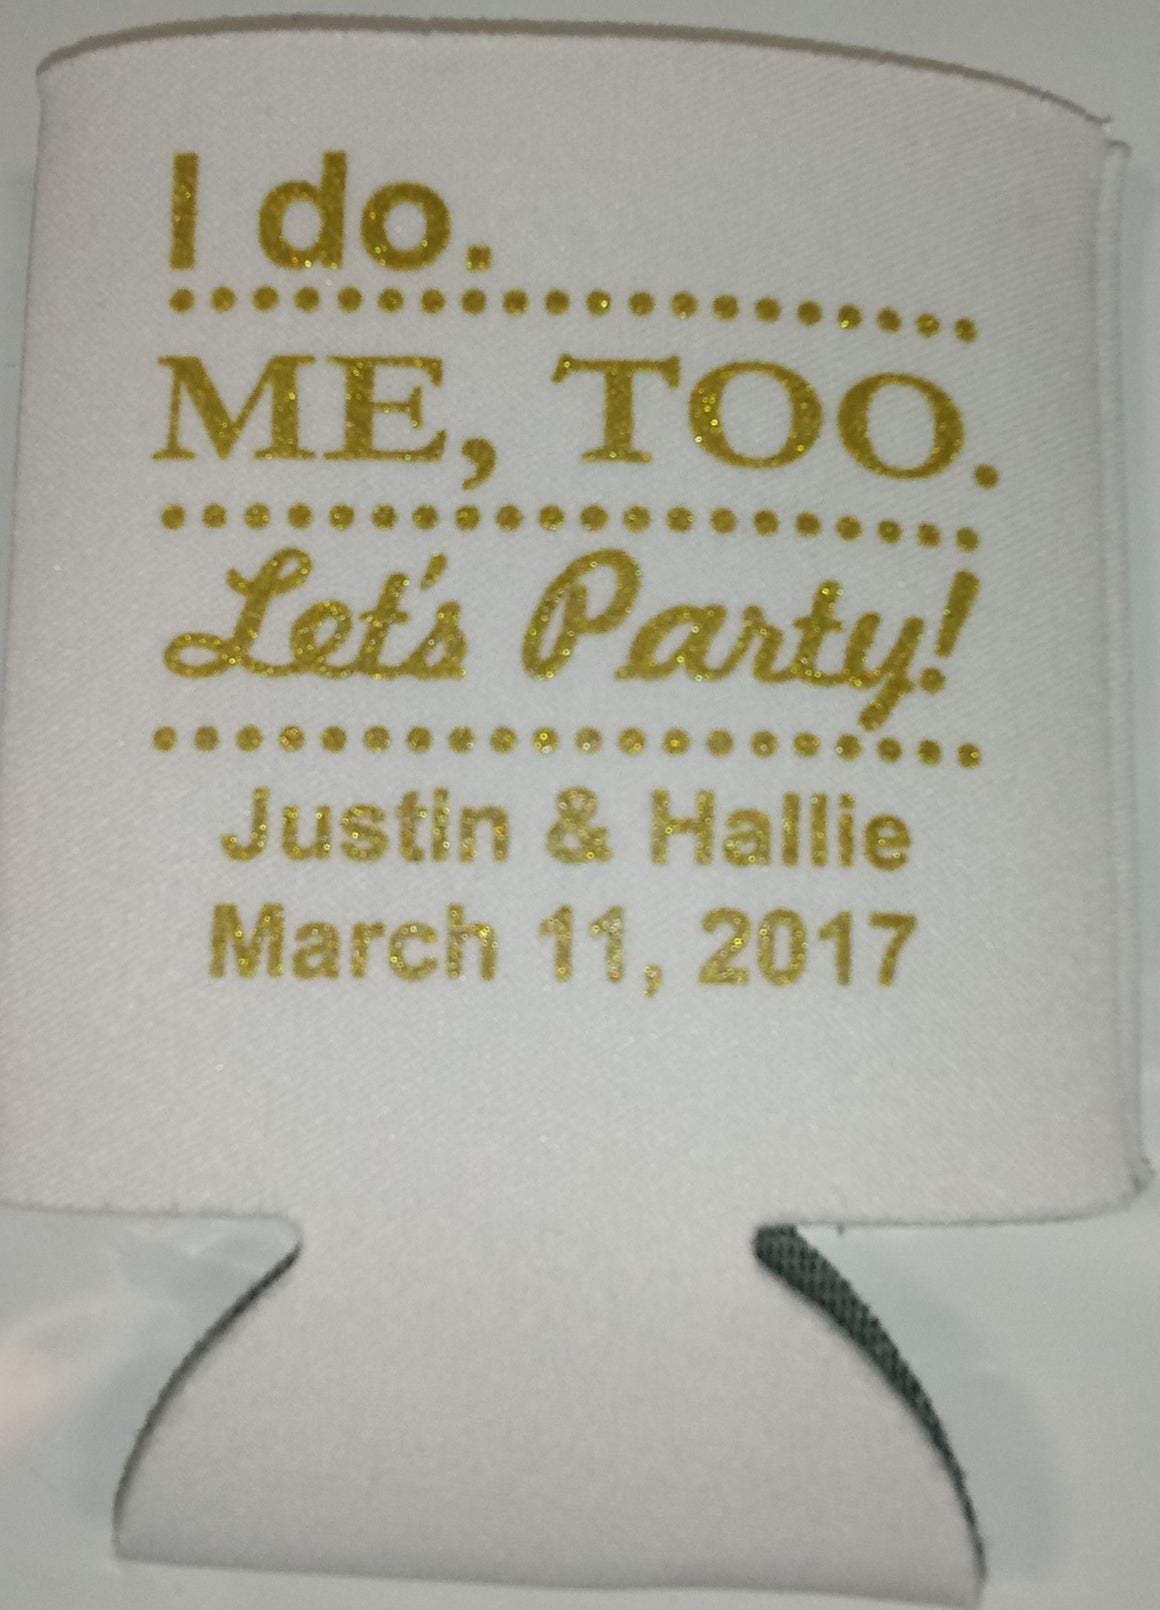 I do me too let's party koozies wedding favors Can Coolers